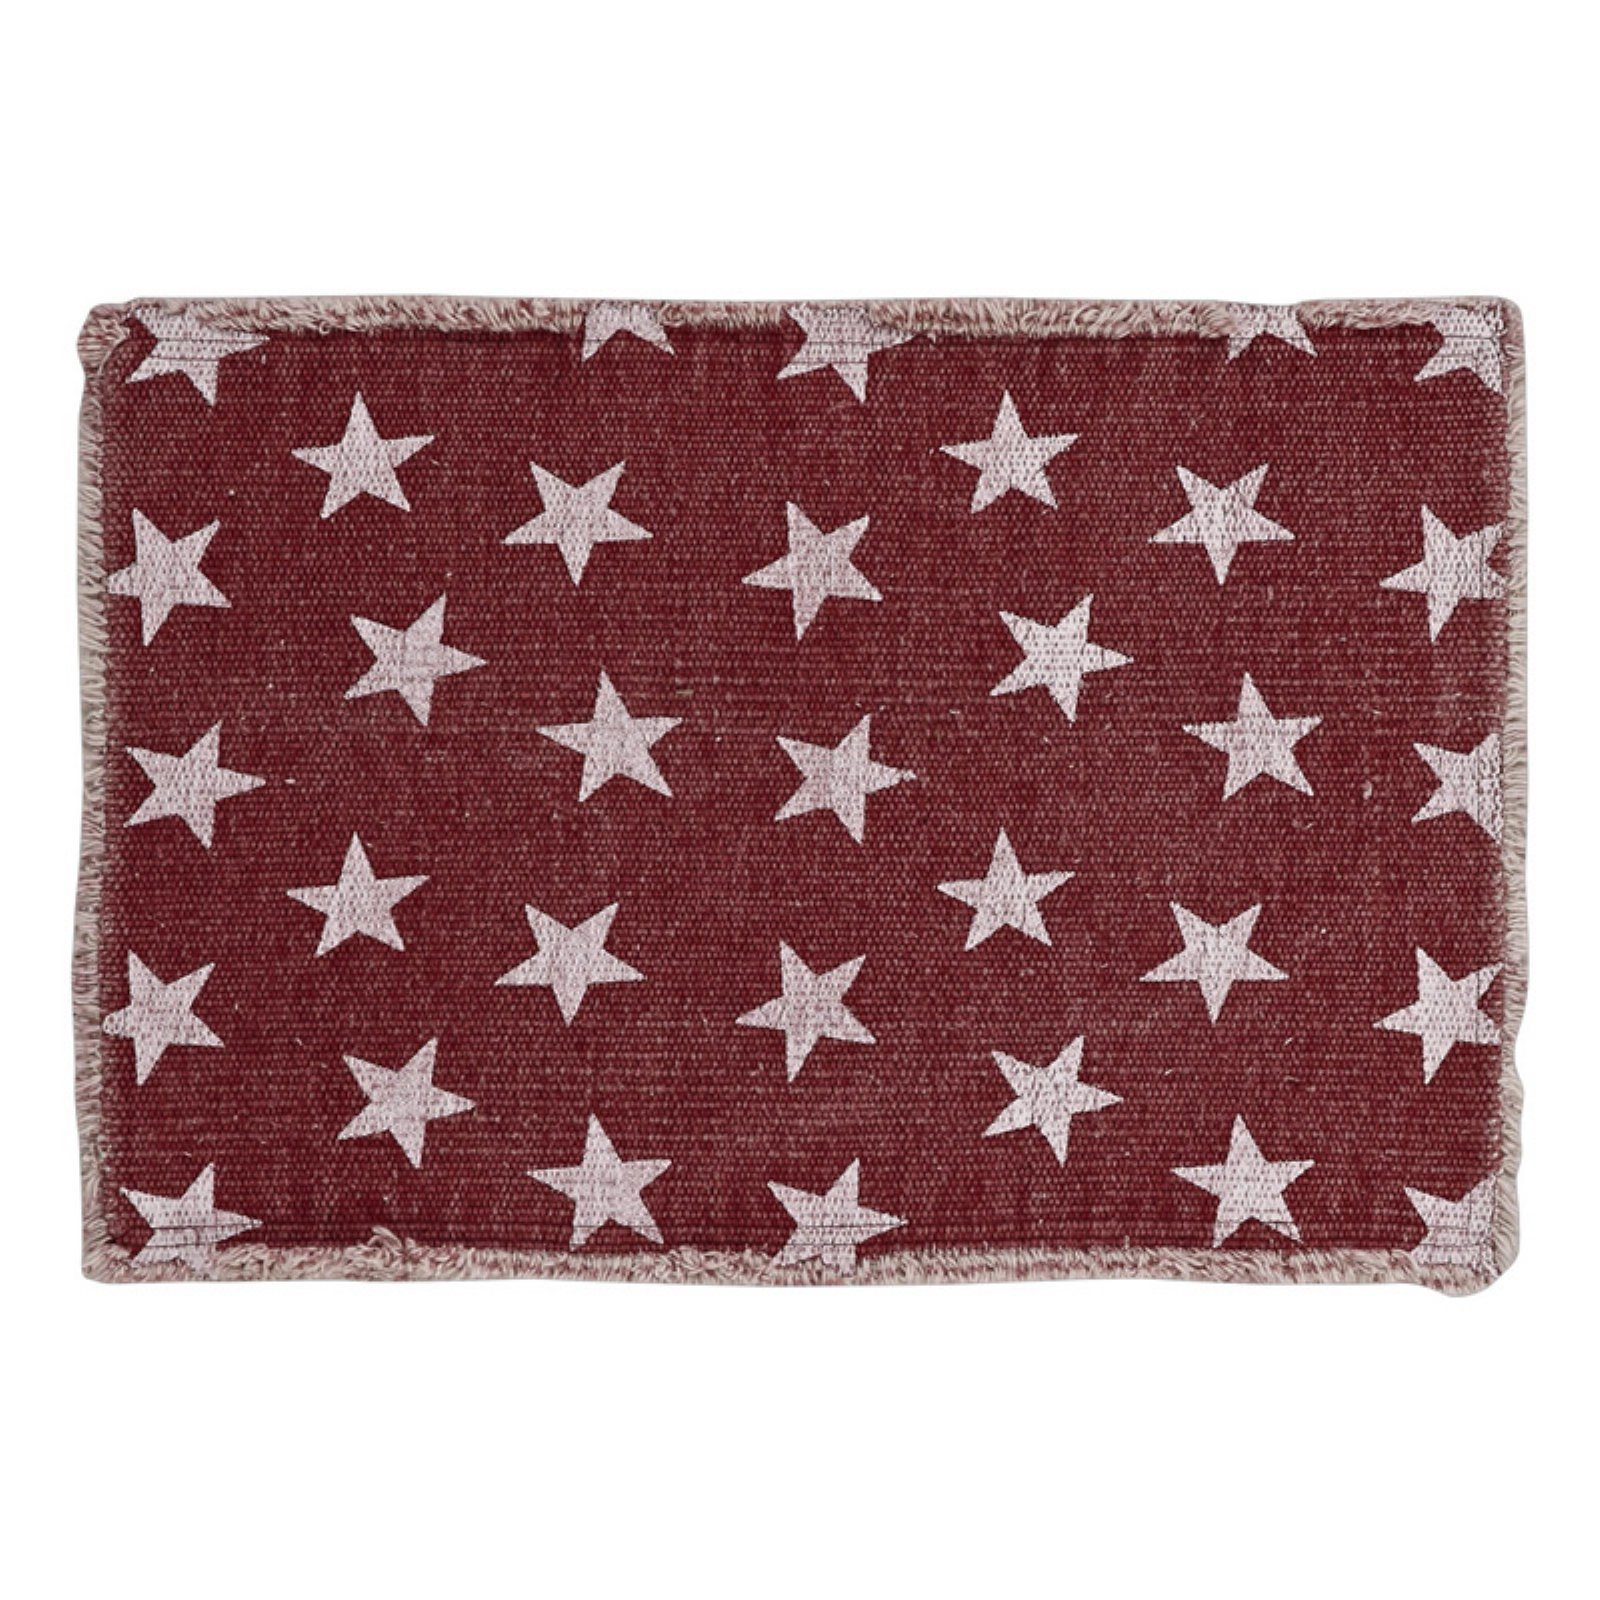 VHC Classic Country Americana Tabletop & Kitchen Multi Star Placemat Set of 6 by VHC Brands